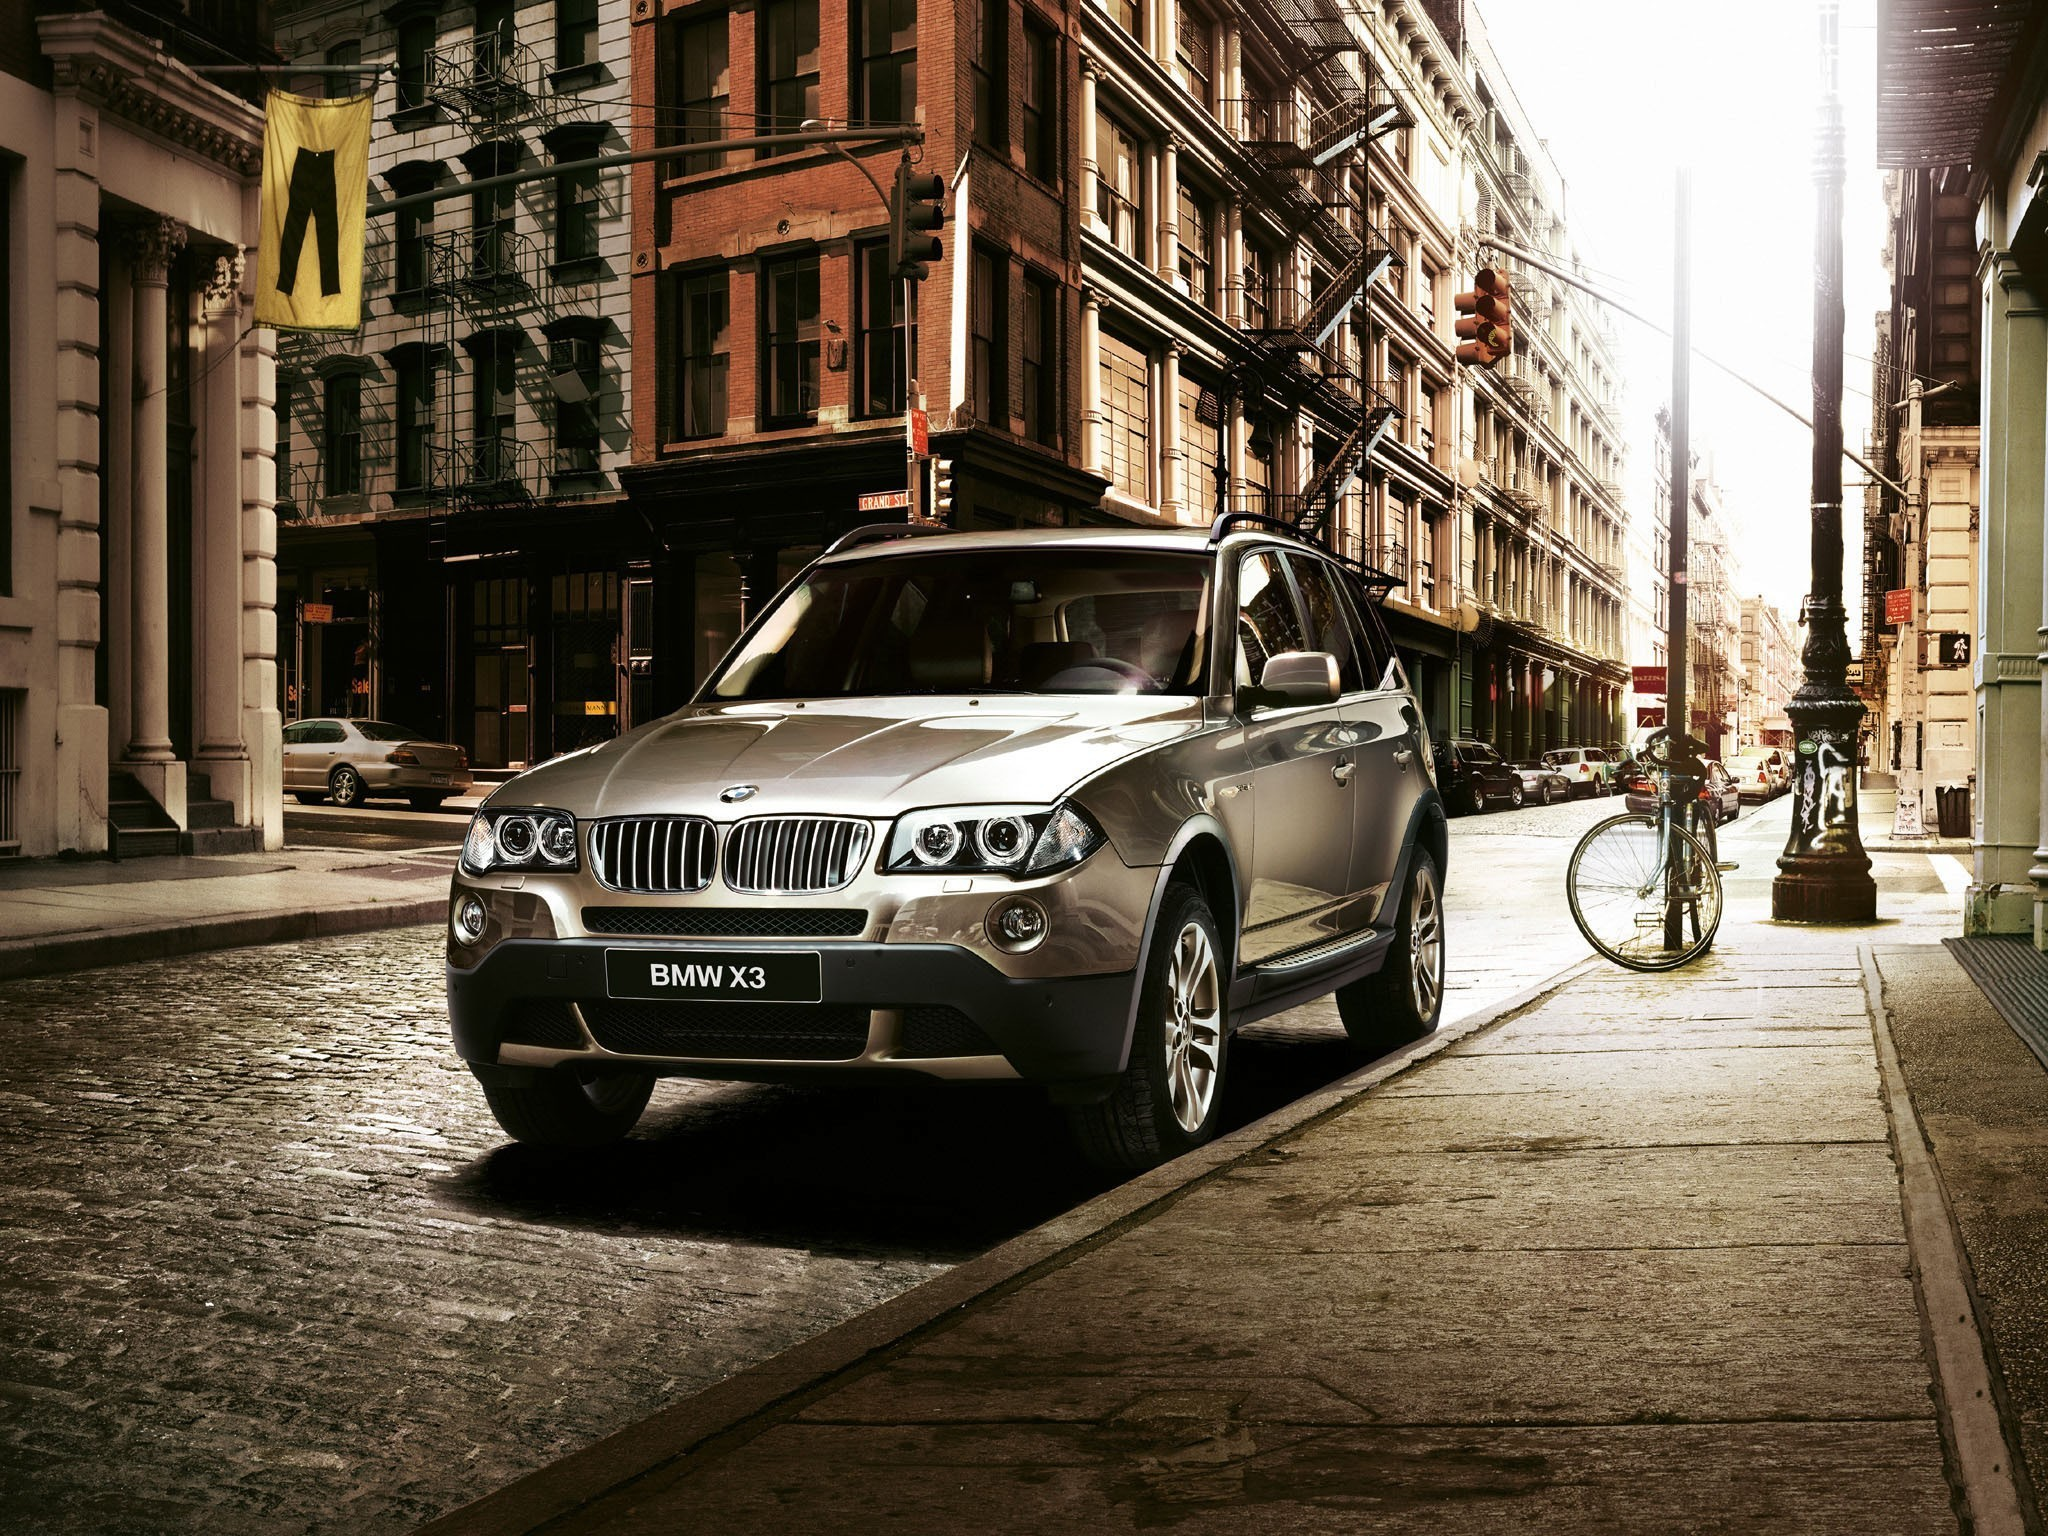 Full Hd Car Logos Wallpapers Bmw X3 Wallpapers Pictures Images